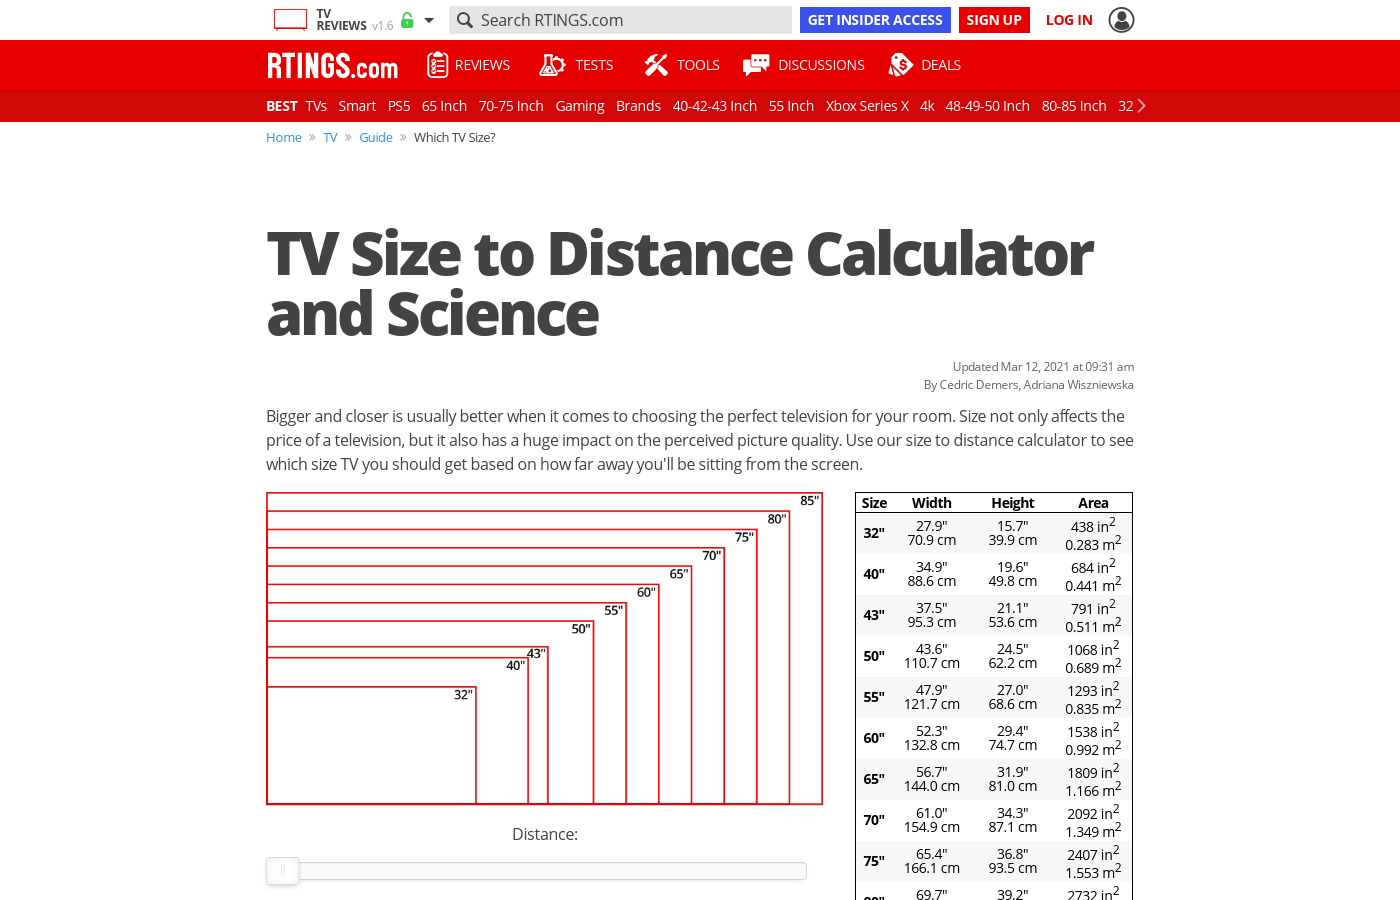 9 To Cm Tv Size To Distance Calculator And Science Rtings